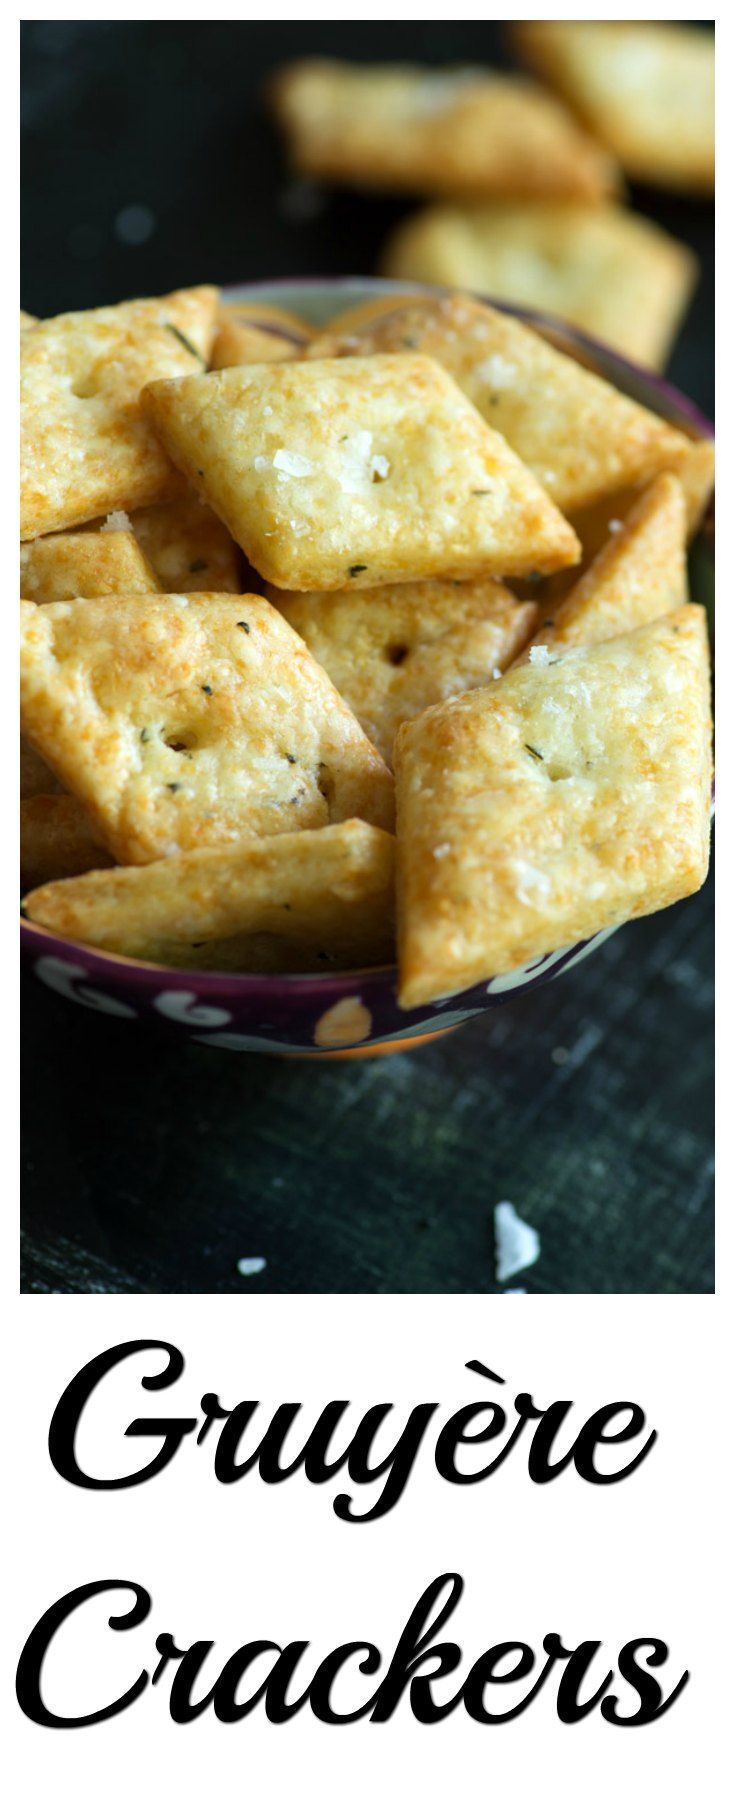 Gruyère Crackers are the grown up version of a childhood favorite, homemade but still easy to make with just 4 ingredients. These savory crackers will be your go to snack or appetizer.